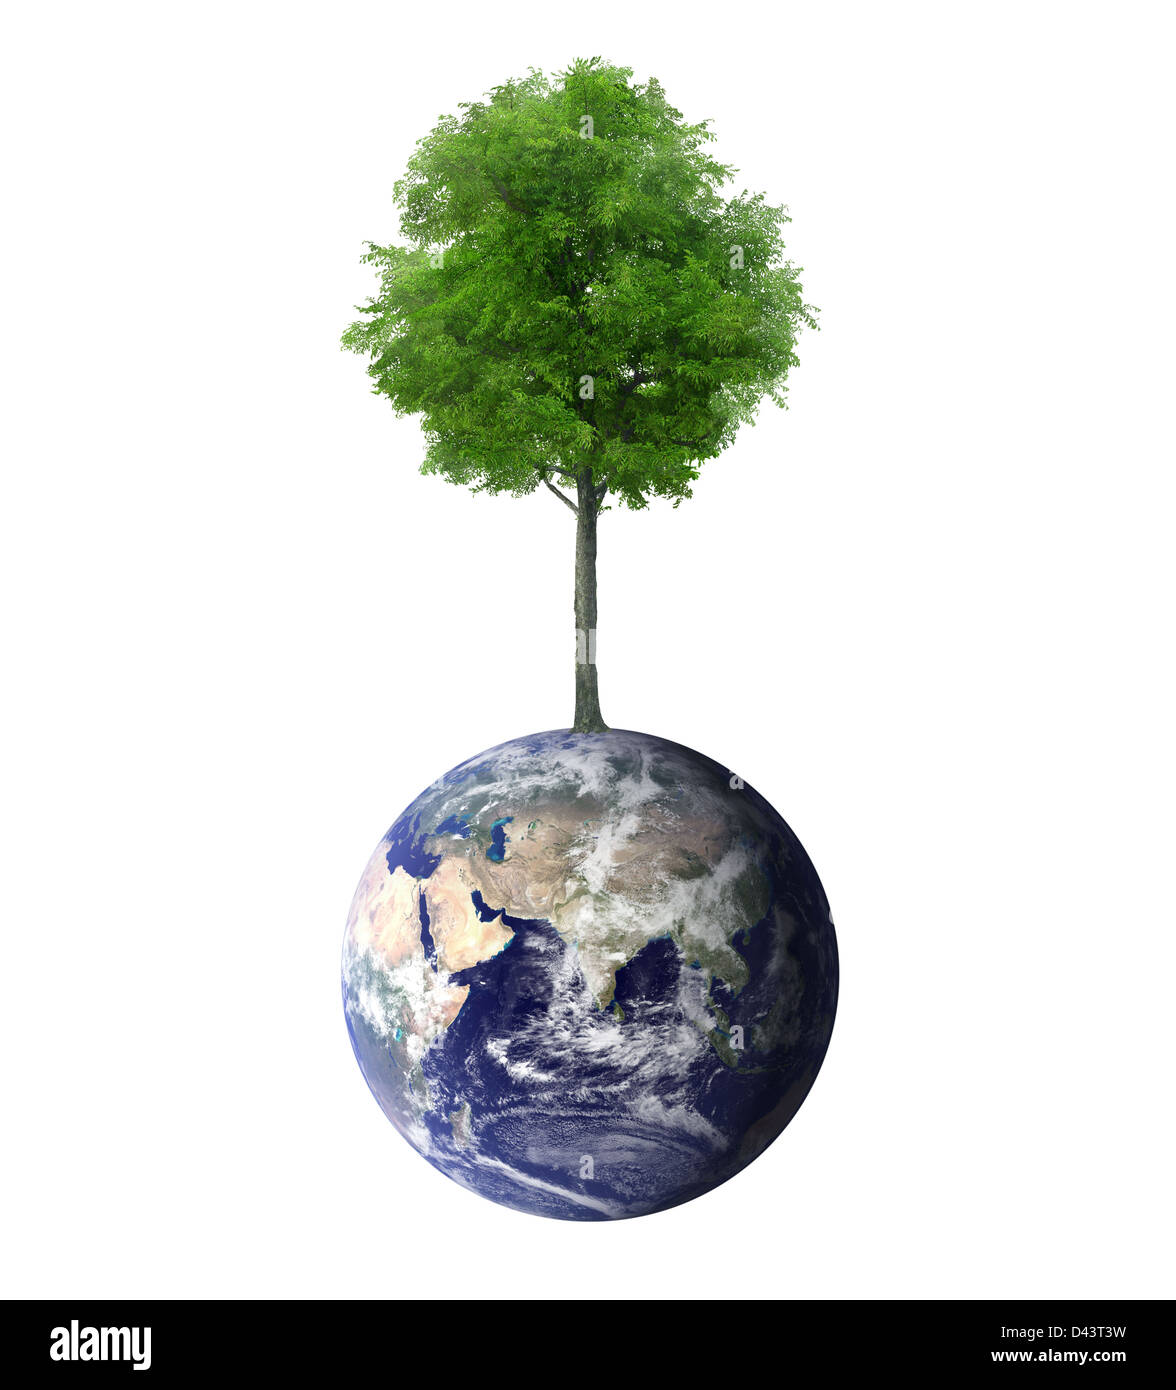 Protect the environment concept - Stock Image